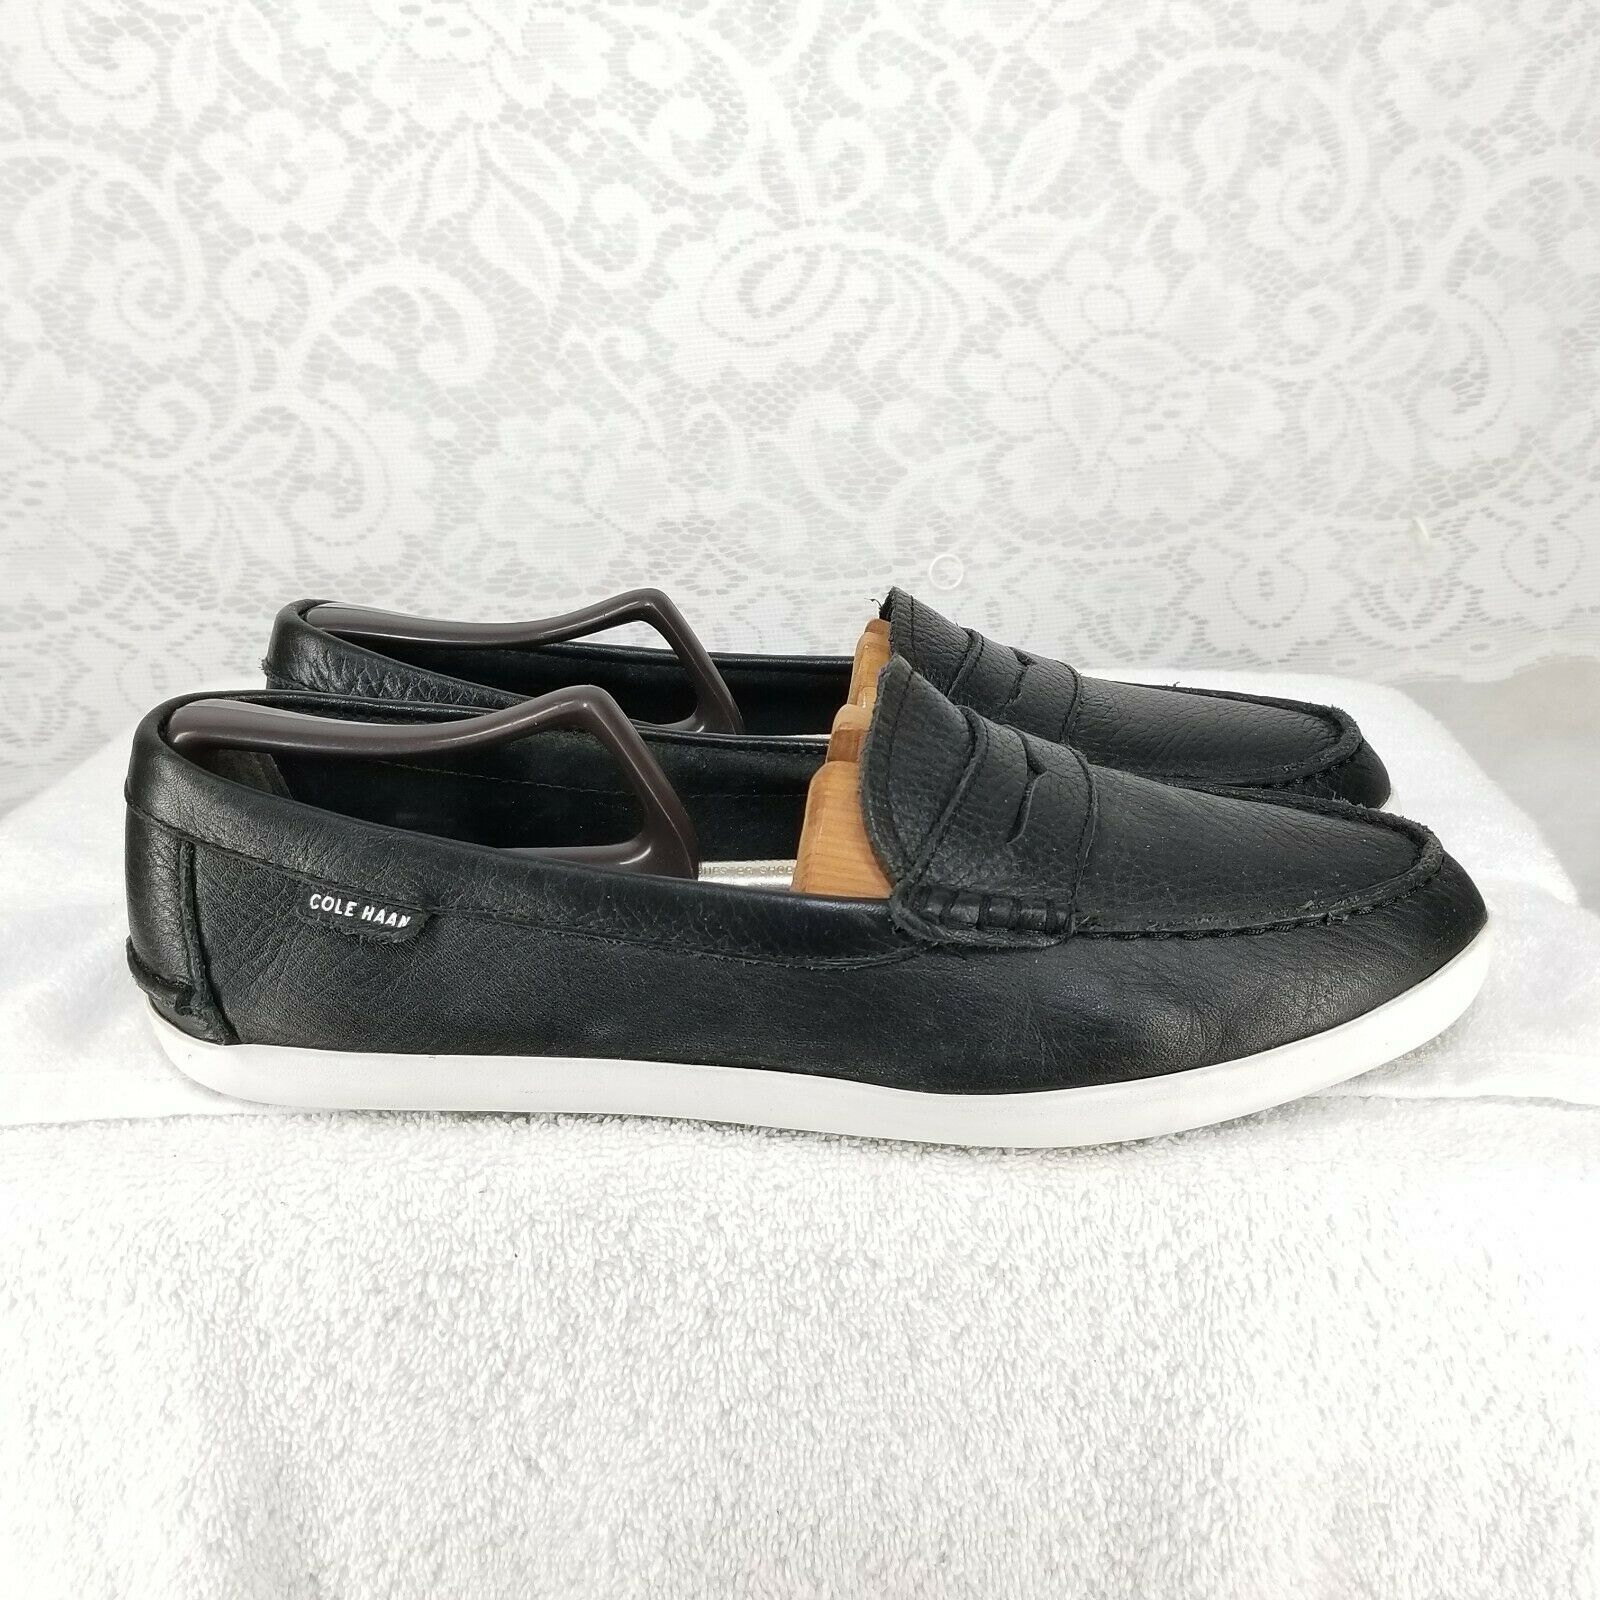 B61 Cole Haan Lunar Grand Black Leather Penny Loafers Women's Sz 10B